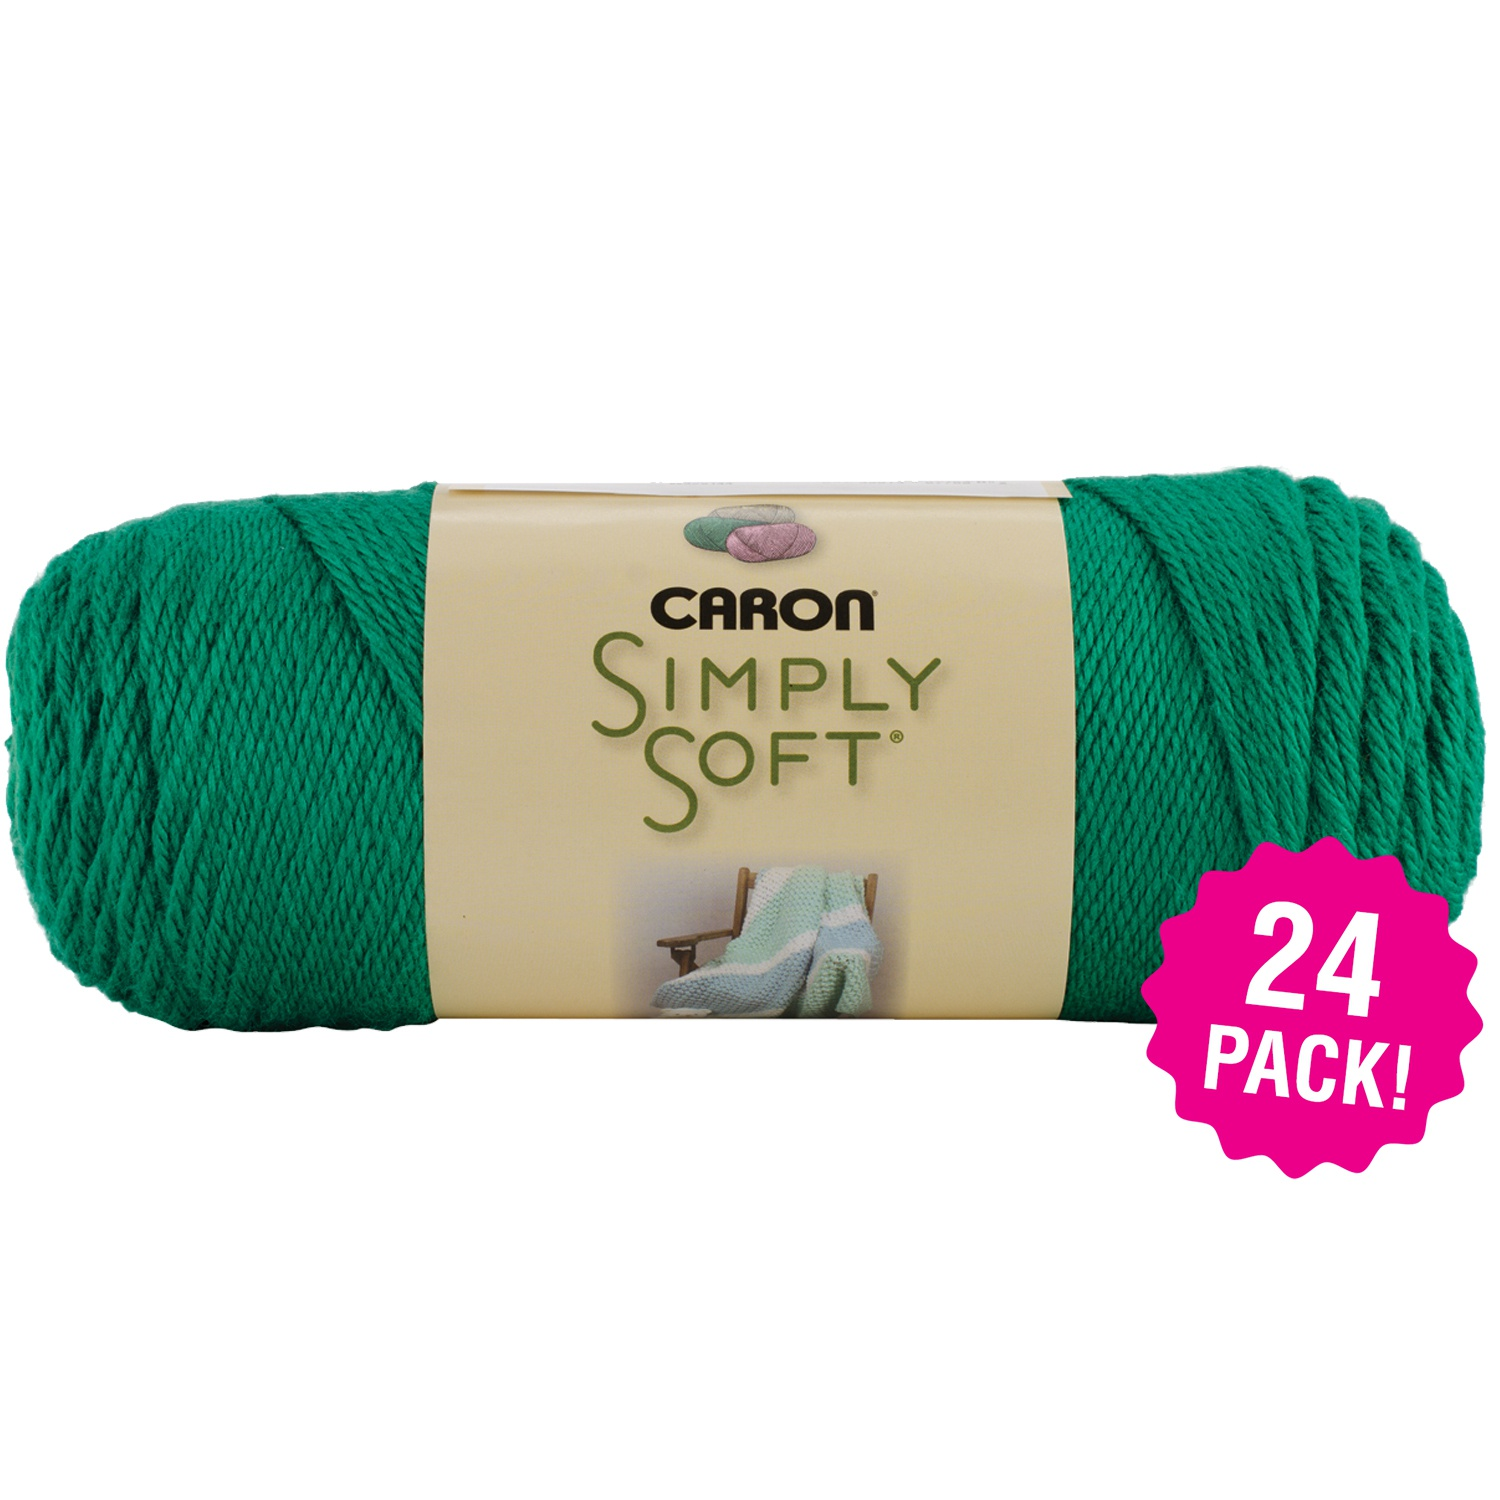 Caron Simply Soft Solids Yarn - Kelly Green, Multipack of 24